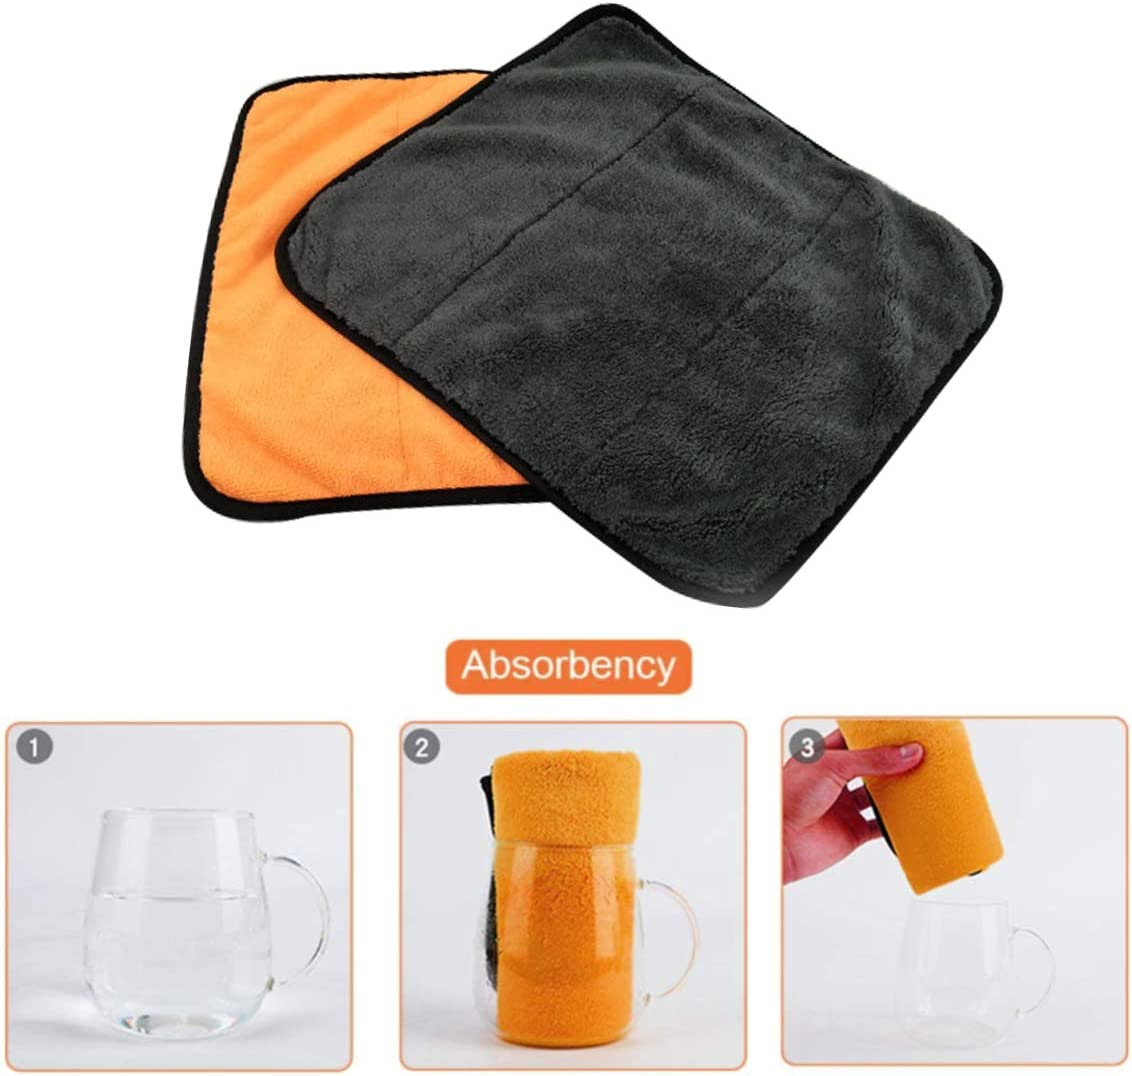 40cm 720gsm Ultra Thick Microfiber Car Cleaning Cloths,Dual Layer Car Drying Plush Towels Kitchen Cleaning Cloths Home Polishing Washing,Pack of 3 Ytesky 38